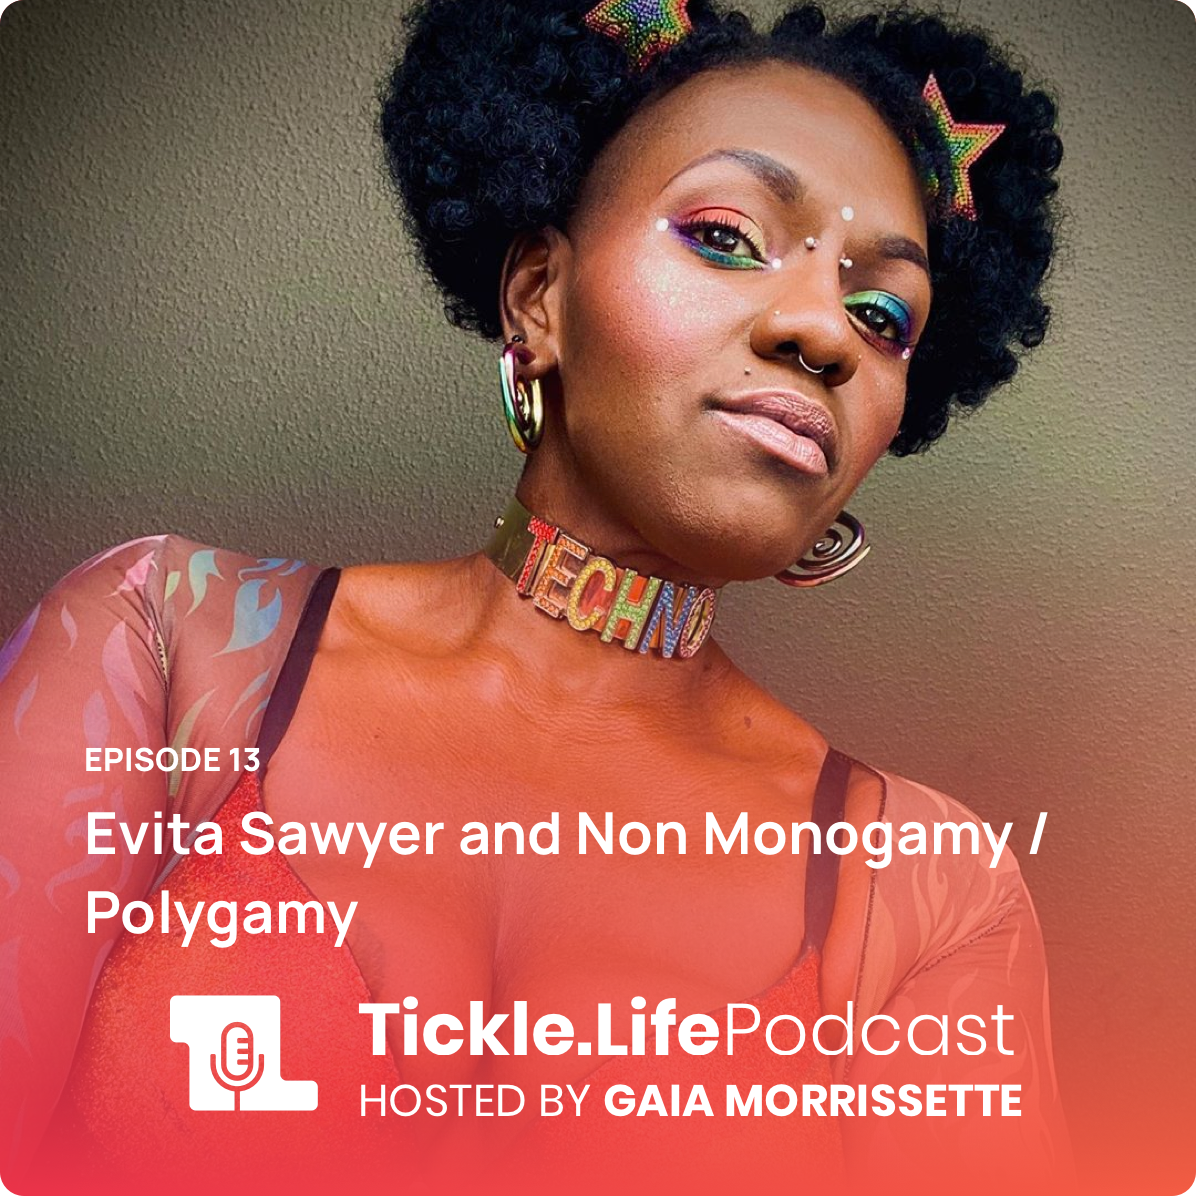 Tickle.Life Podcast - Evita Sawyer and Non-Monogamy / Polygamy